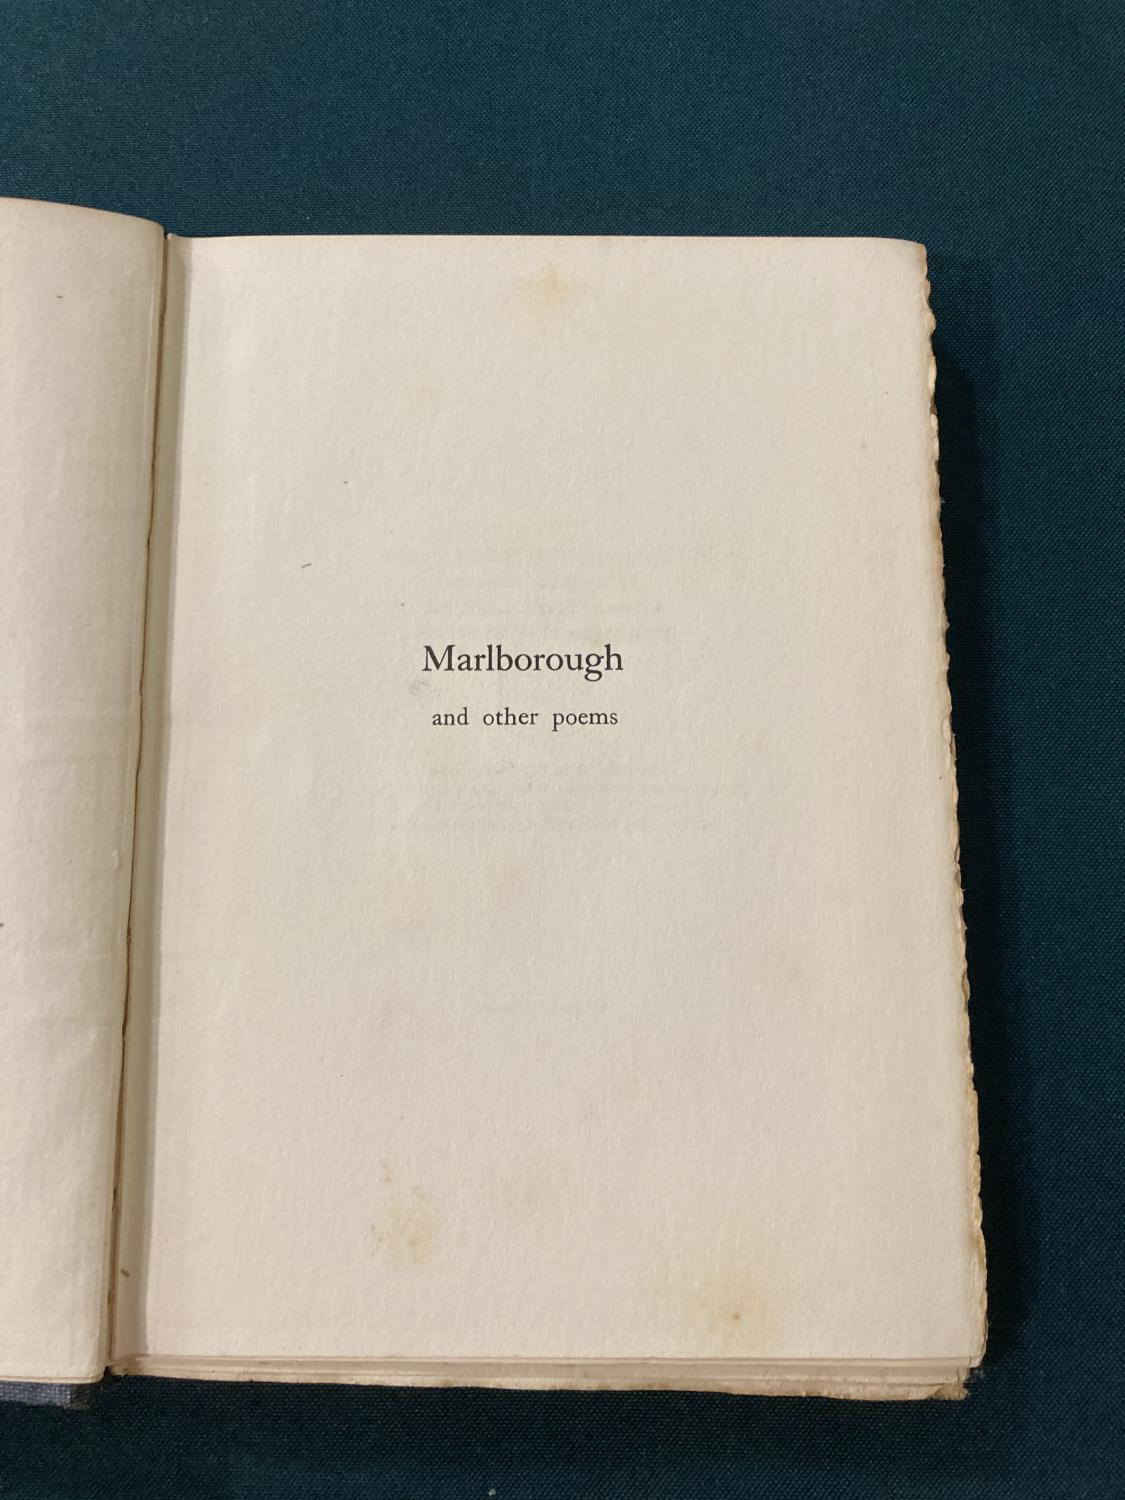 Sorley, Charles Hamilton. Marlborough and other poems, first edition, photographic portrait - Image 6 of 9